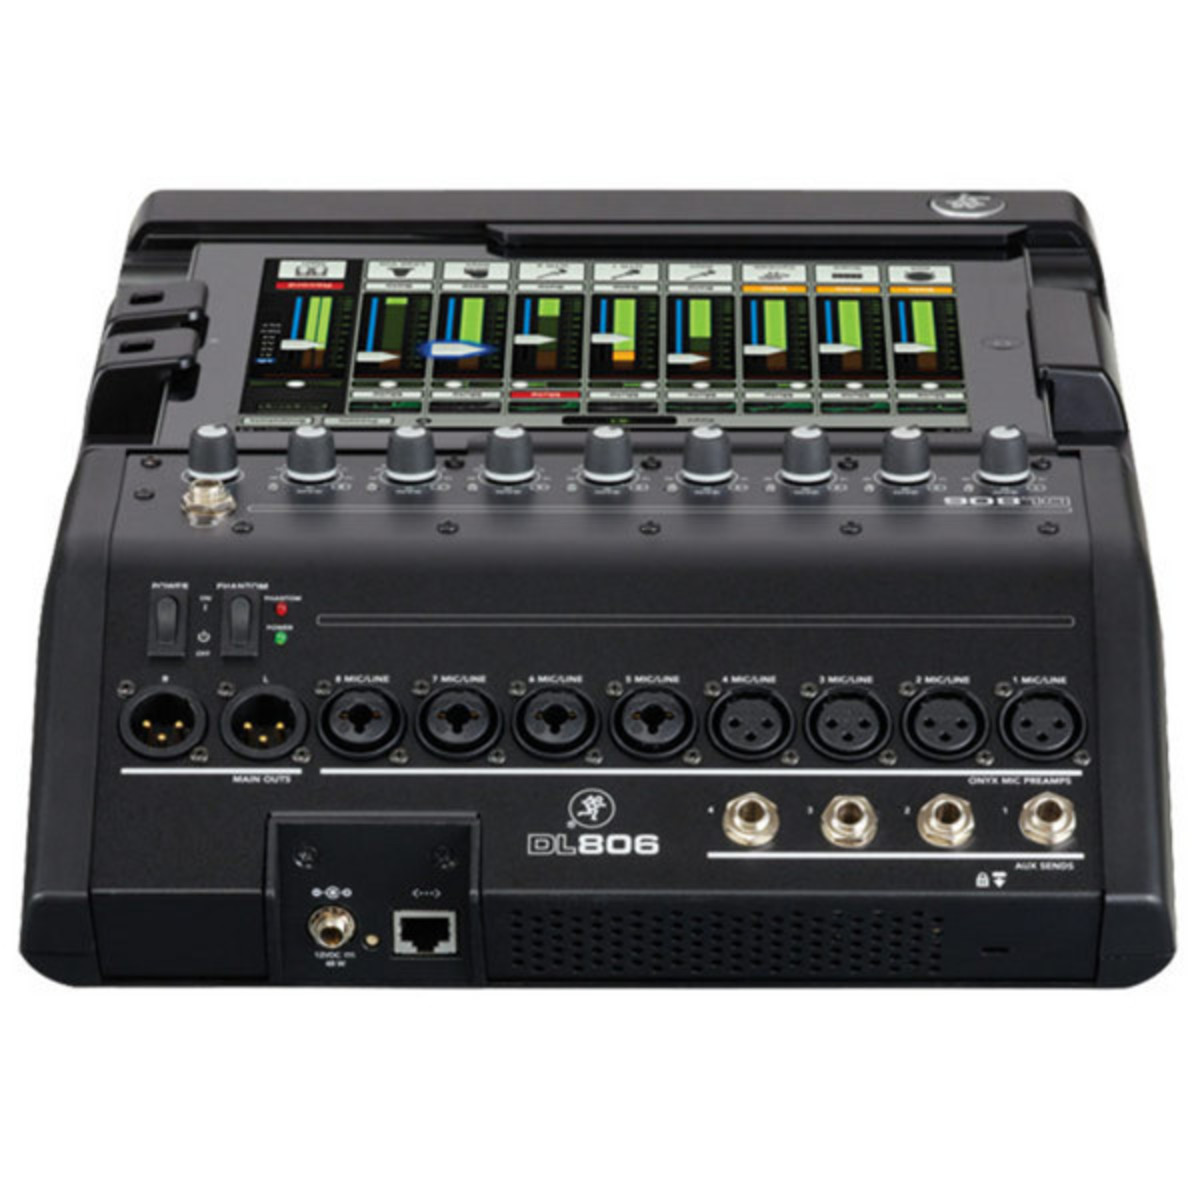 mackie dl806 digital live sound mixer with lightning ipad control box opened at gear4music. Black Bedroom Furniture Sets. Home Design Ideas